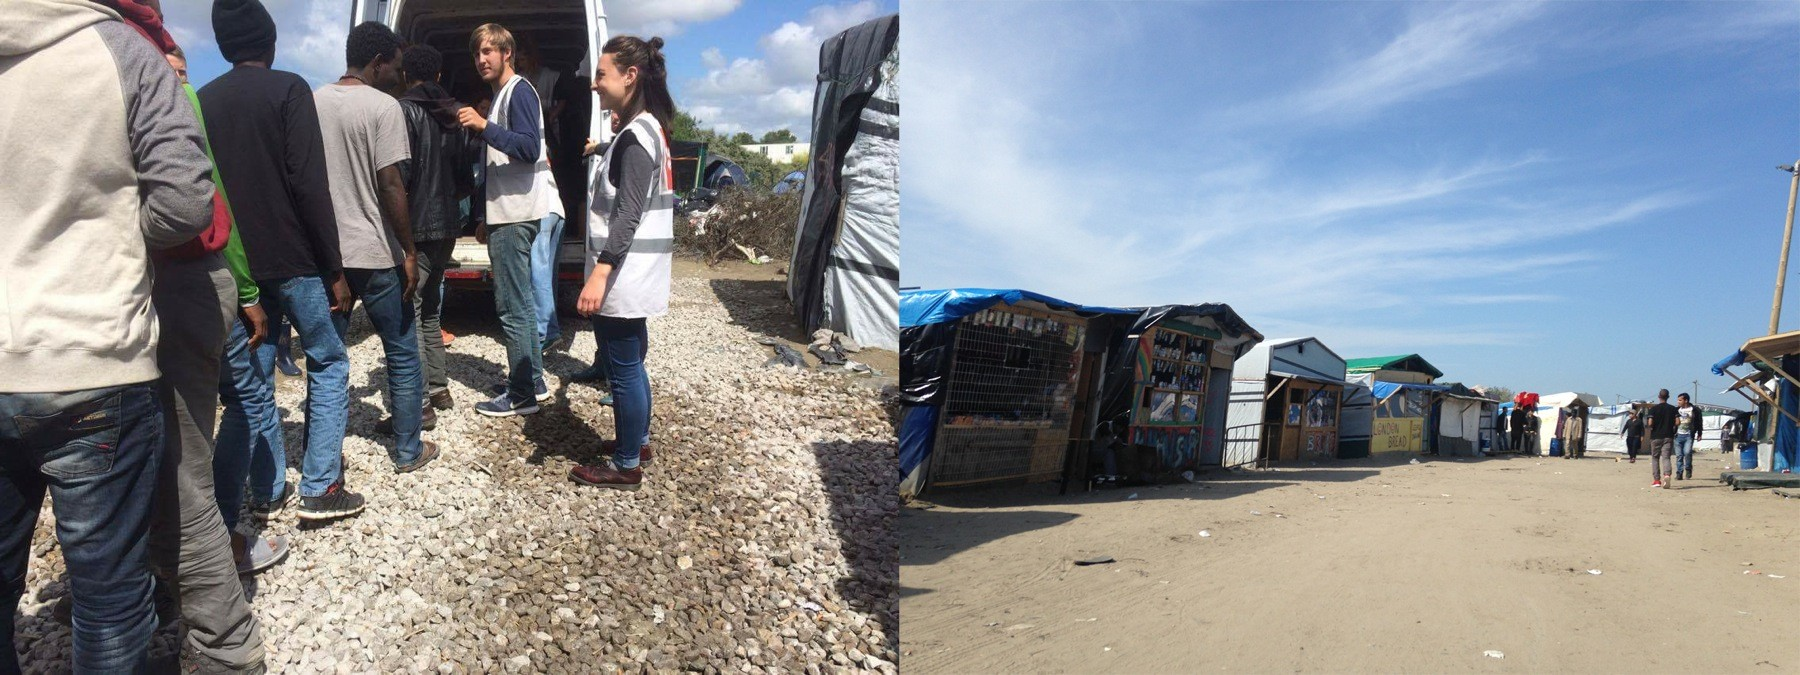 Left: Bret Windhauser helps manage a food distribution line in the Jungle. Right: The camp's thousands of residents live in tents and makeshift wooden shelters.